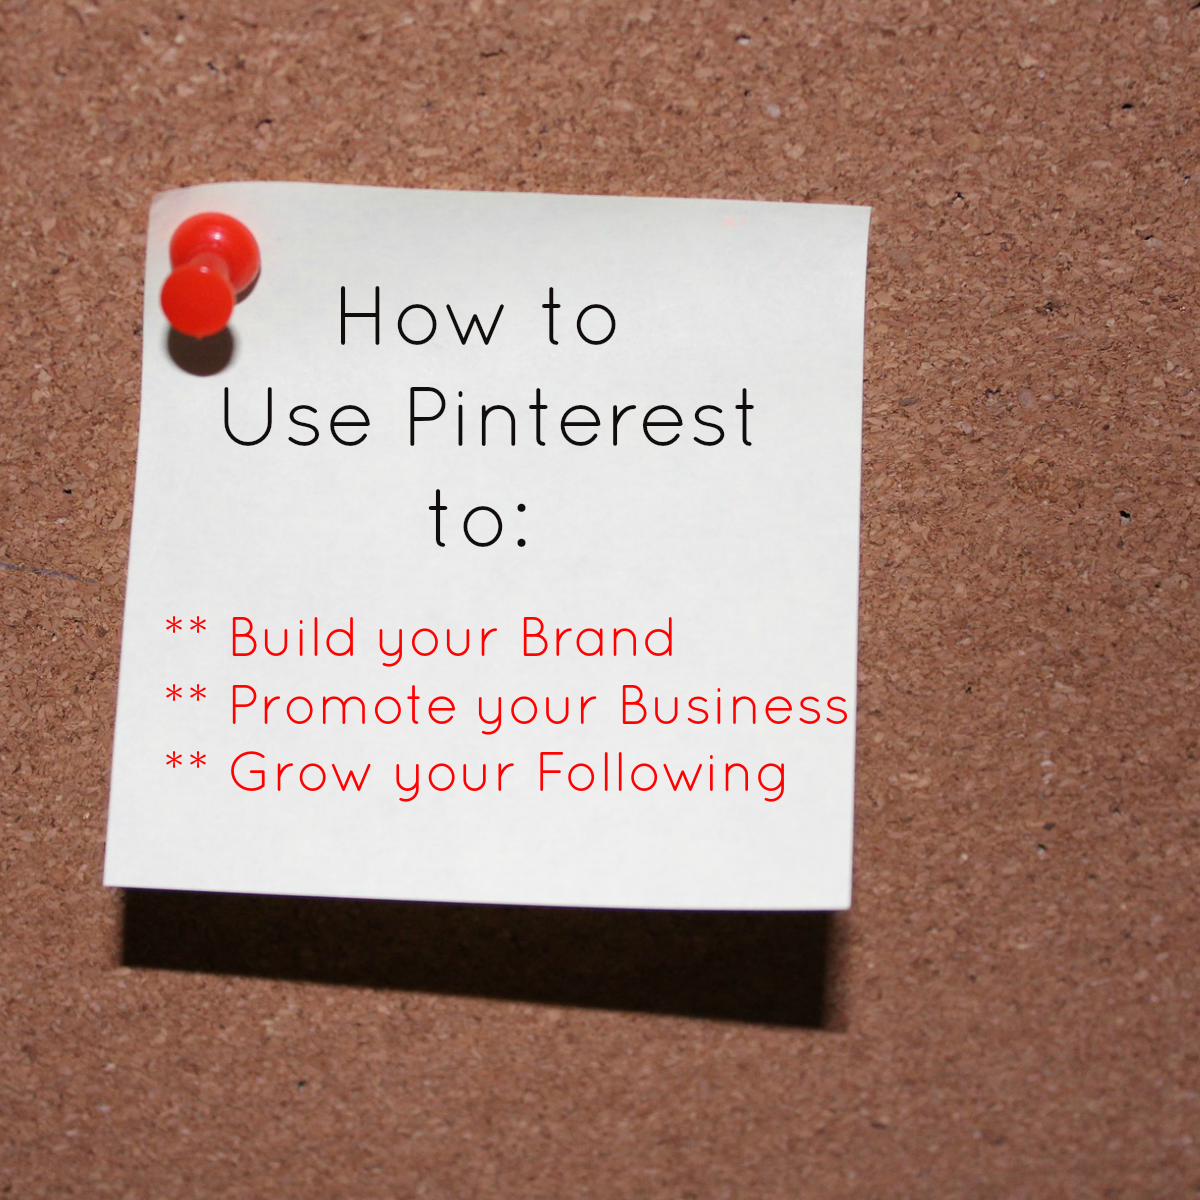 12 Tips to Get Your Home Business Pins Noticed on Pinterest